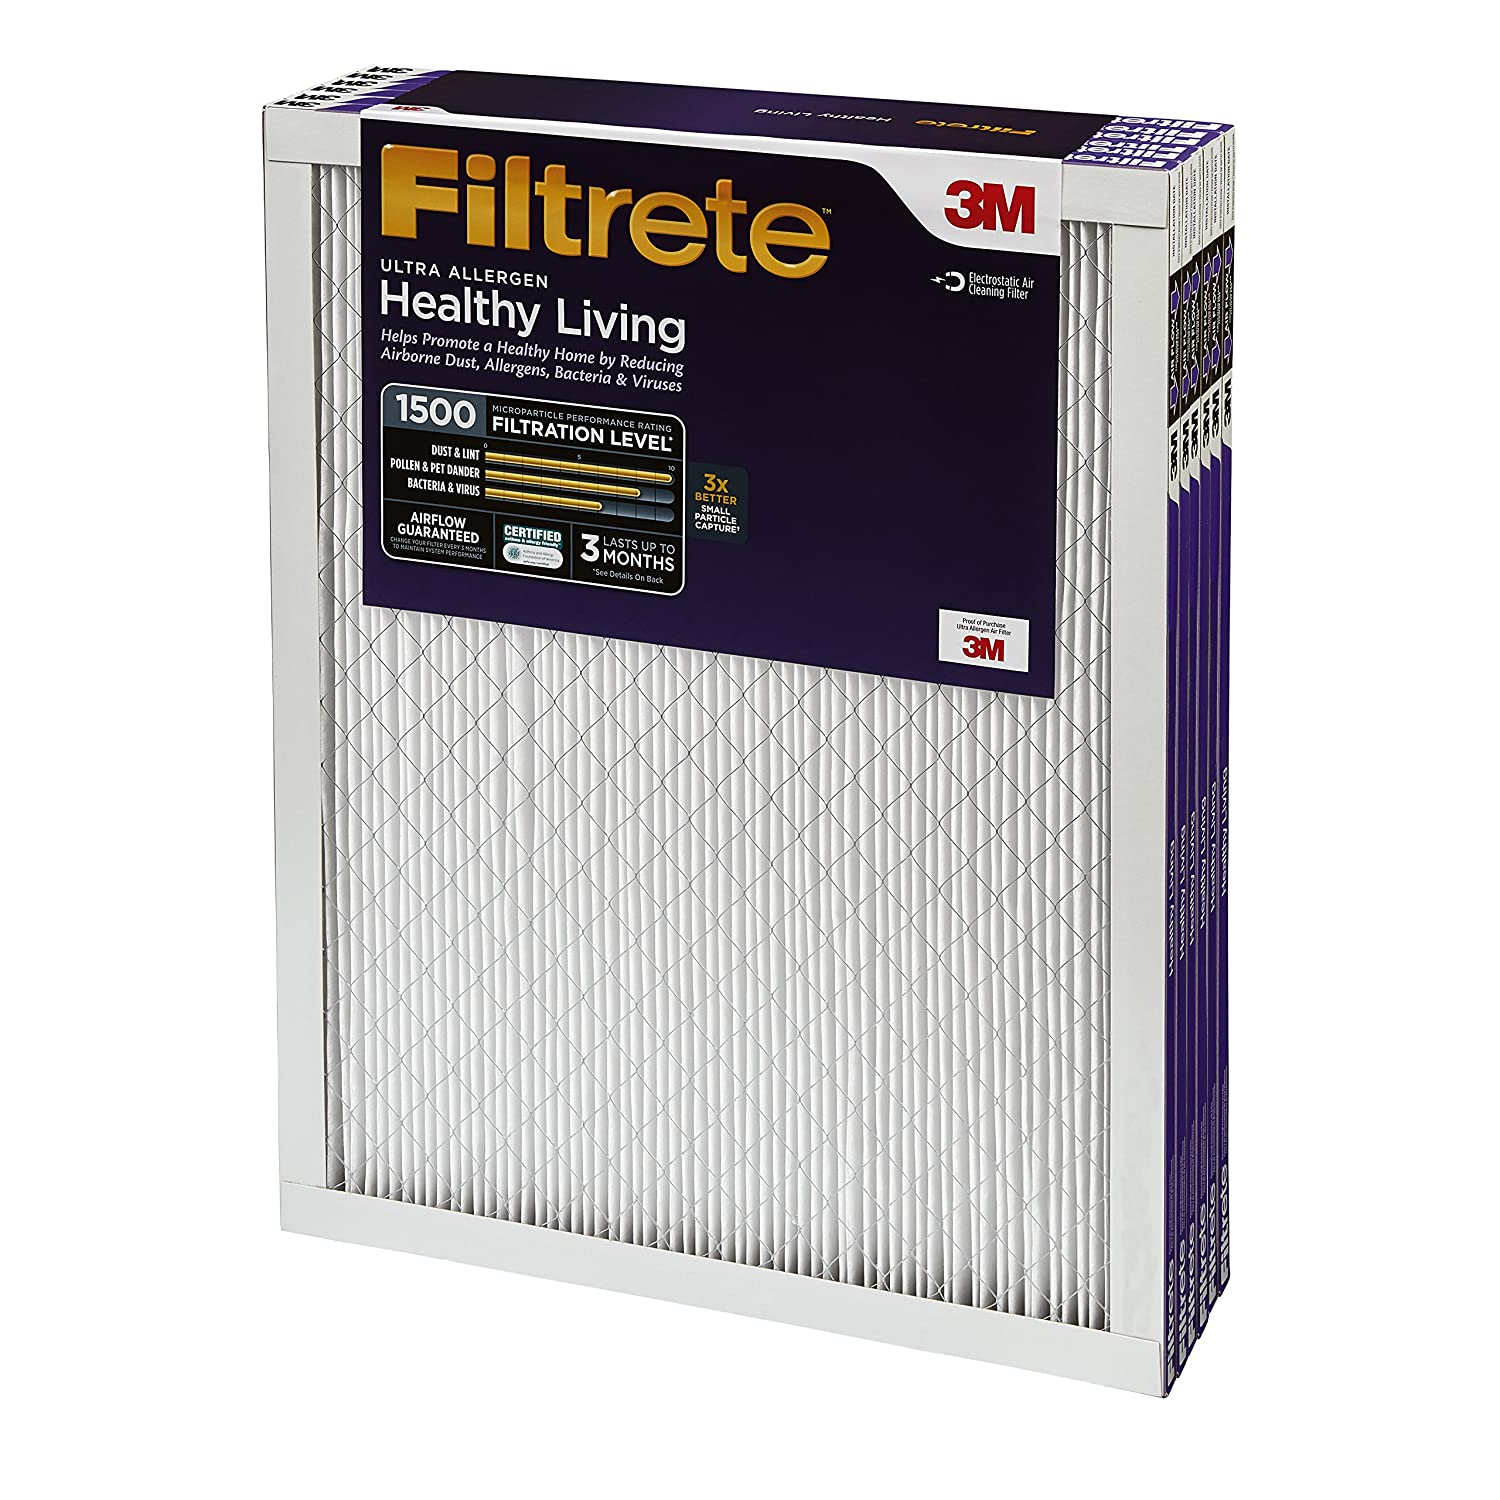 Best furnace air filters for allergies - Filtrete Healthy Living Ultra Allergen Reduction Ac Furnace Air Filter Mpr 1500 16 X 25 X 1 Inches 6 Pack Replacement Furnace Filters Amazon Com